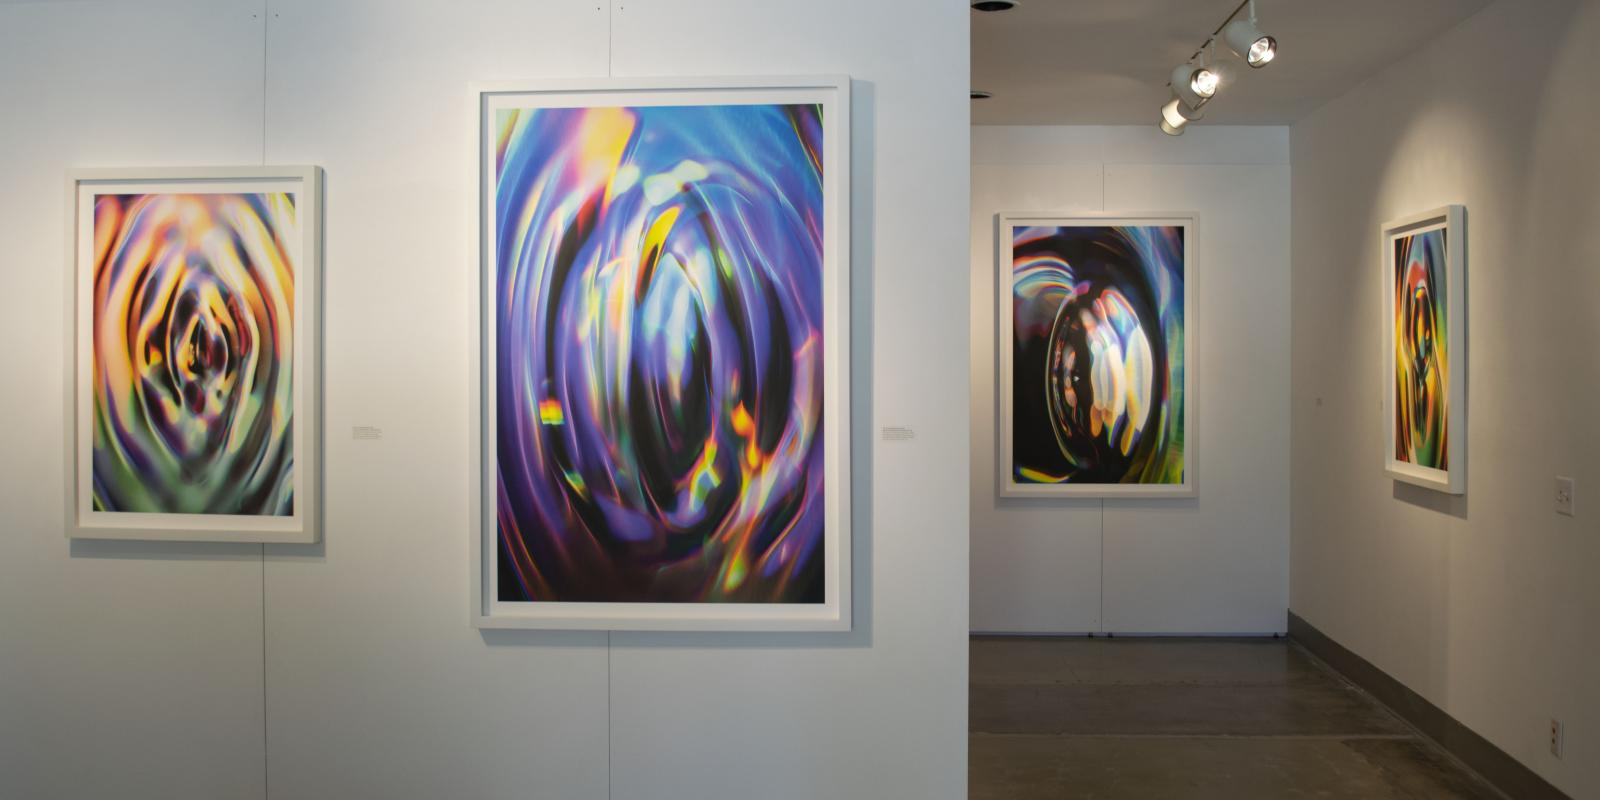 Passageway in the gallery, Exhibition: Sasha vom Dorp: 15.15 Hz, Aug. 23 - Oct. 18, 2018, Curator: Michele Cairella Fillmore, W. Keith & Janet Kellogg Art Gallery, Cal Poly Pomona. [New Mexico-based artist Sasha vom Dorp interplay of light, sound and water in microscopic moments (Photo Credit: William W. Gunn)]